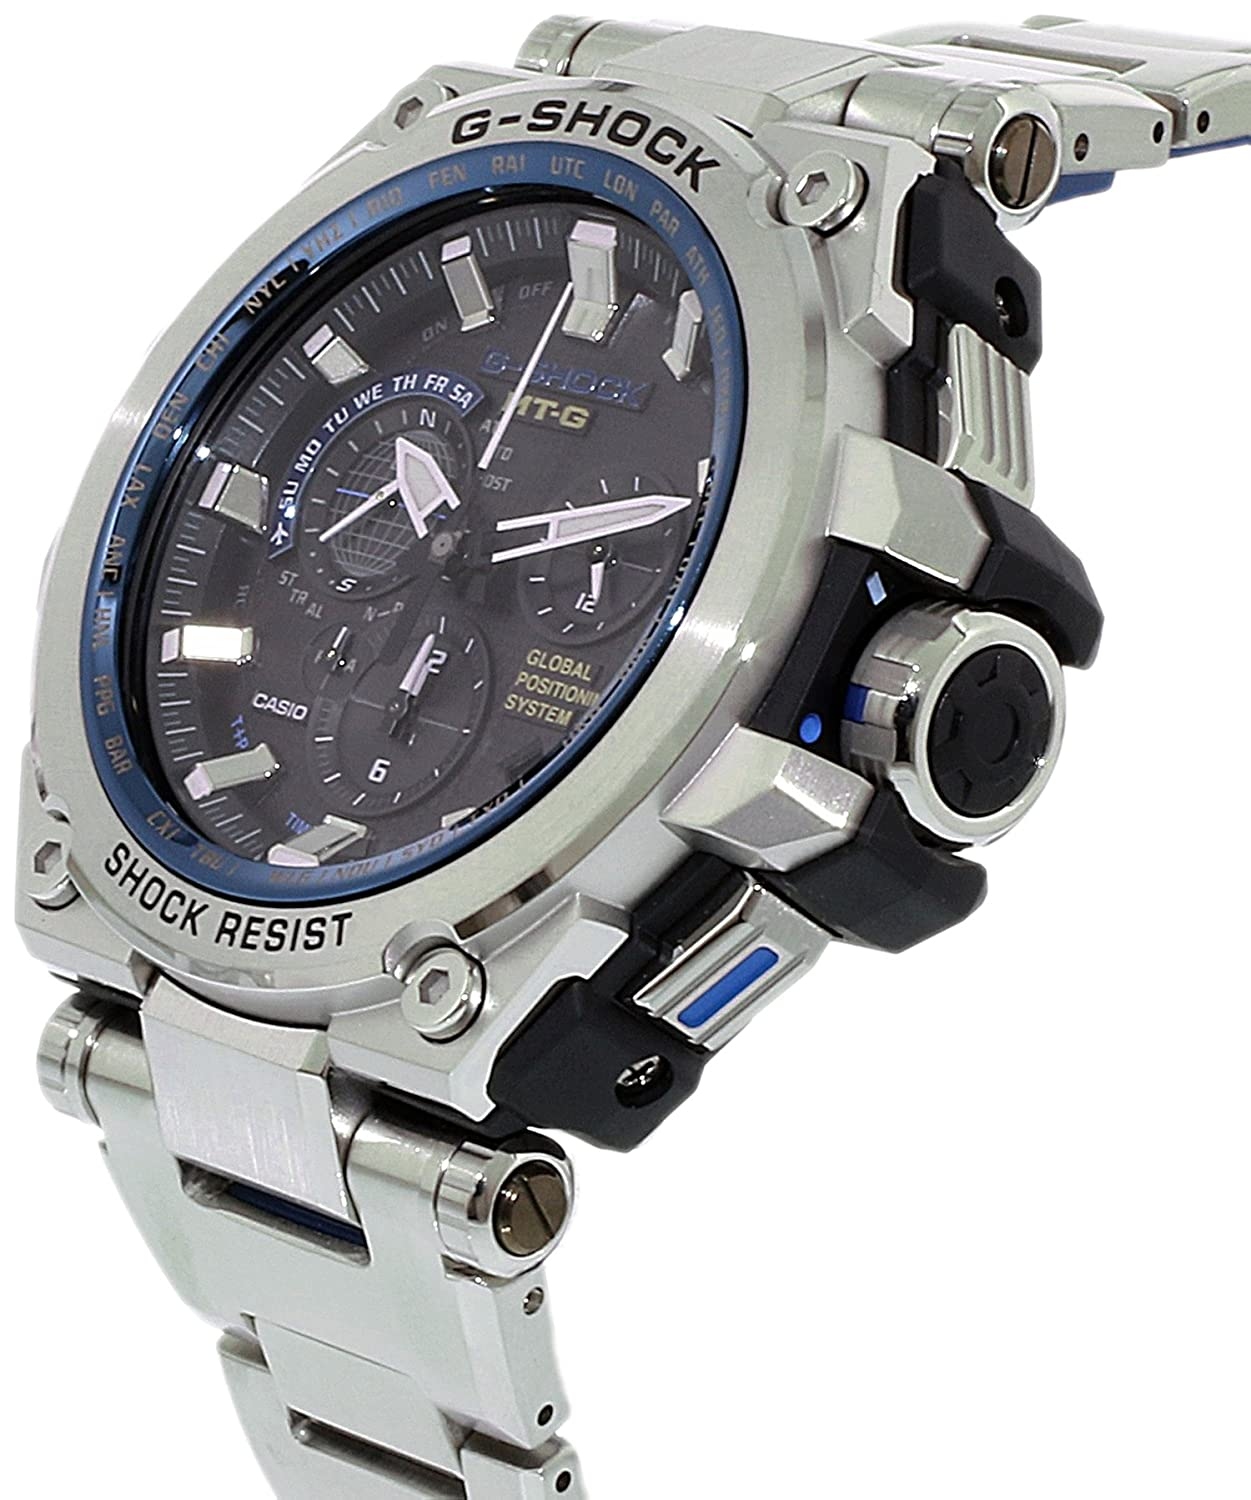 Promo Gshock Mtgg1000d Premium Mtg And Casio T G Shock S1000d 1a4 Sapphire Crystal Amazoncom Mens Mt Stainless Steel Resin Watch Watches